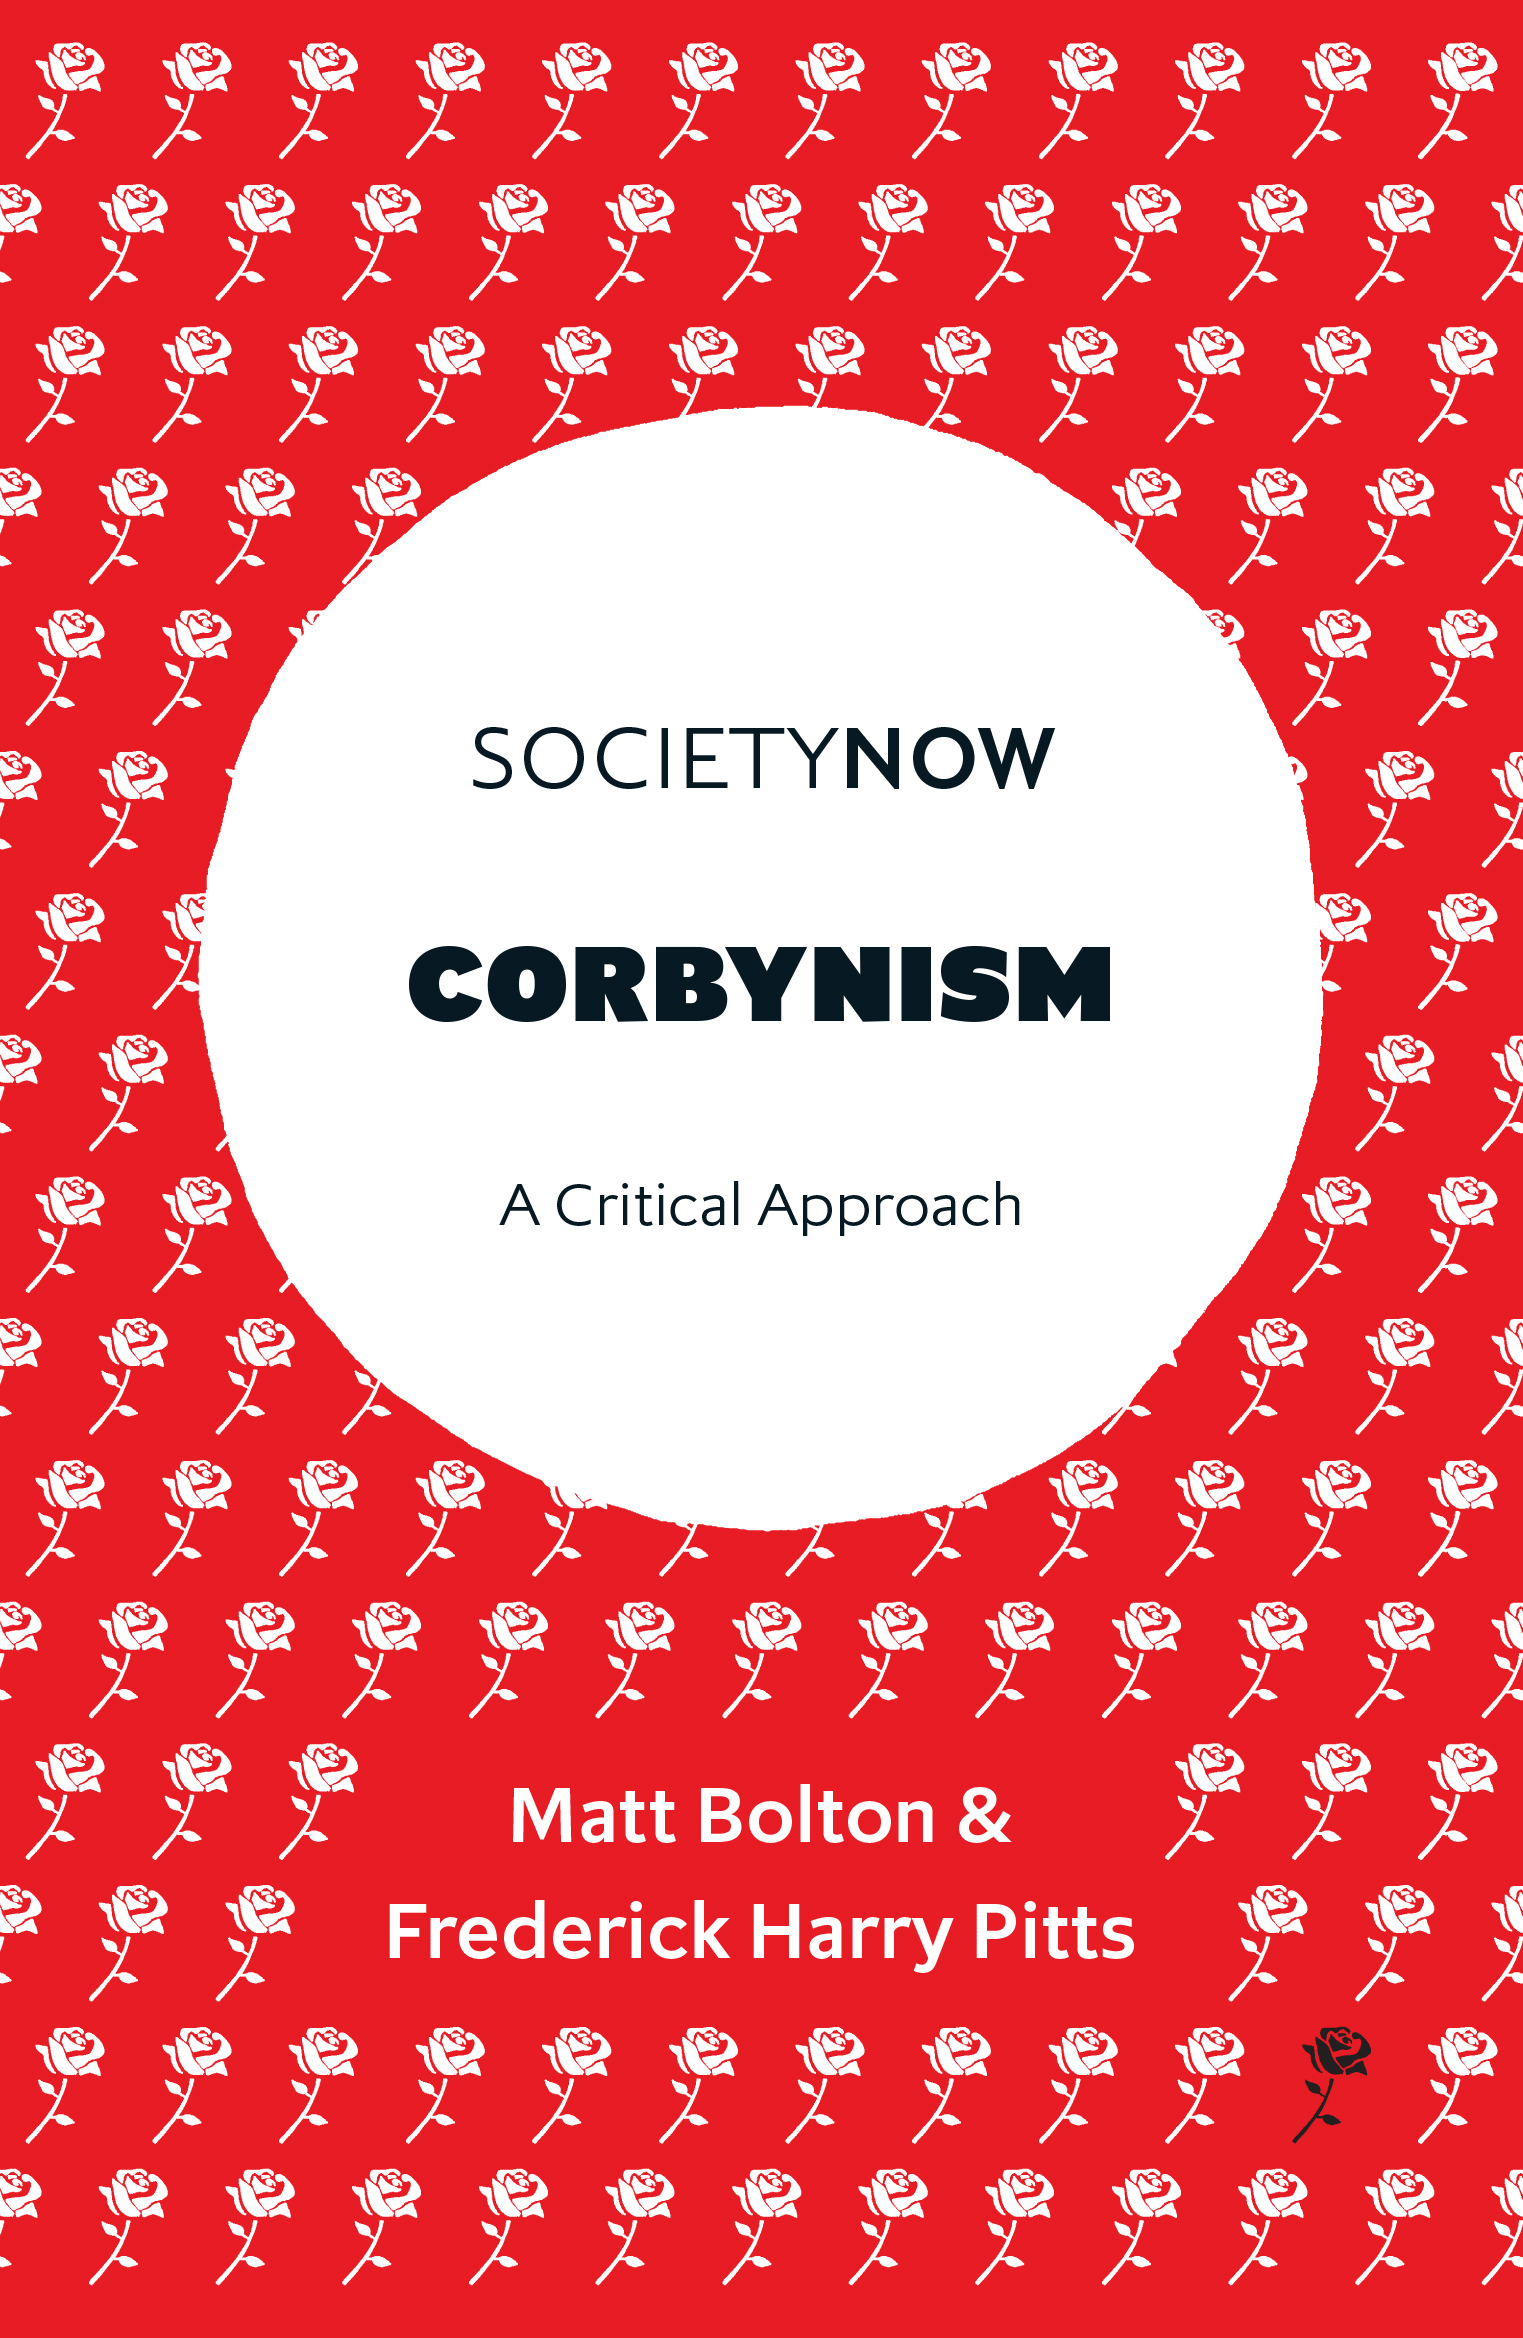 Book cover for Corbynism:  A Critical Approach a book by Matt  Bolton, Frederick Harry Pitts